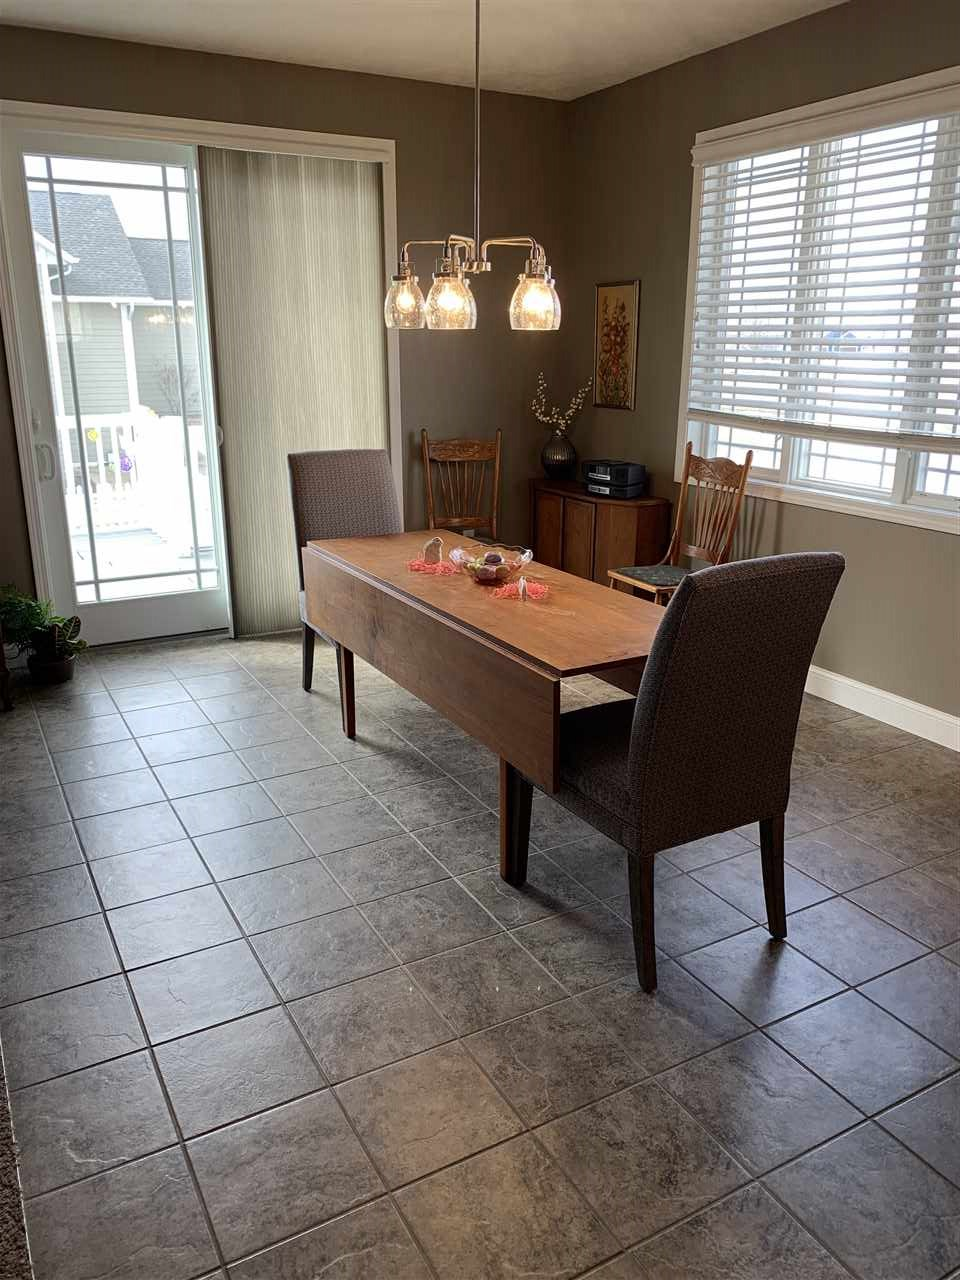 Homes For Sale at 34th